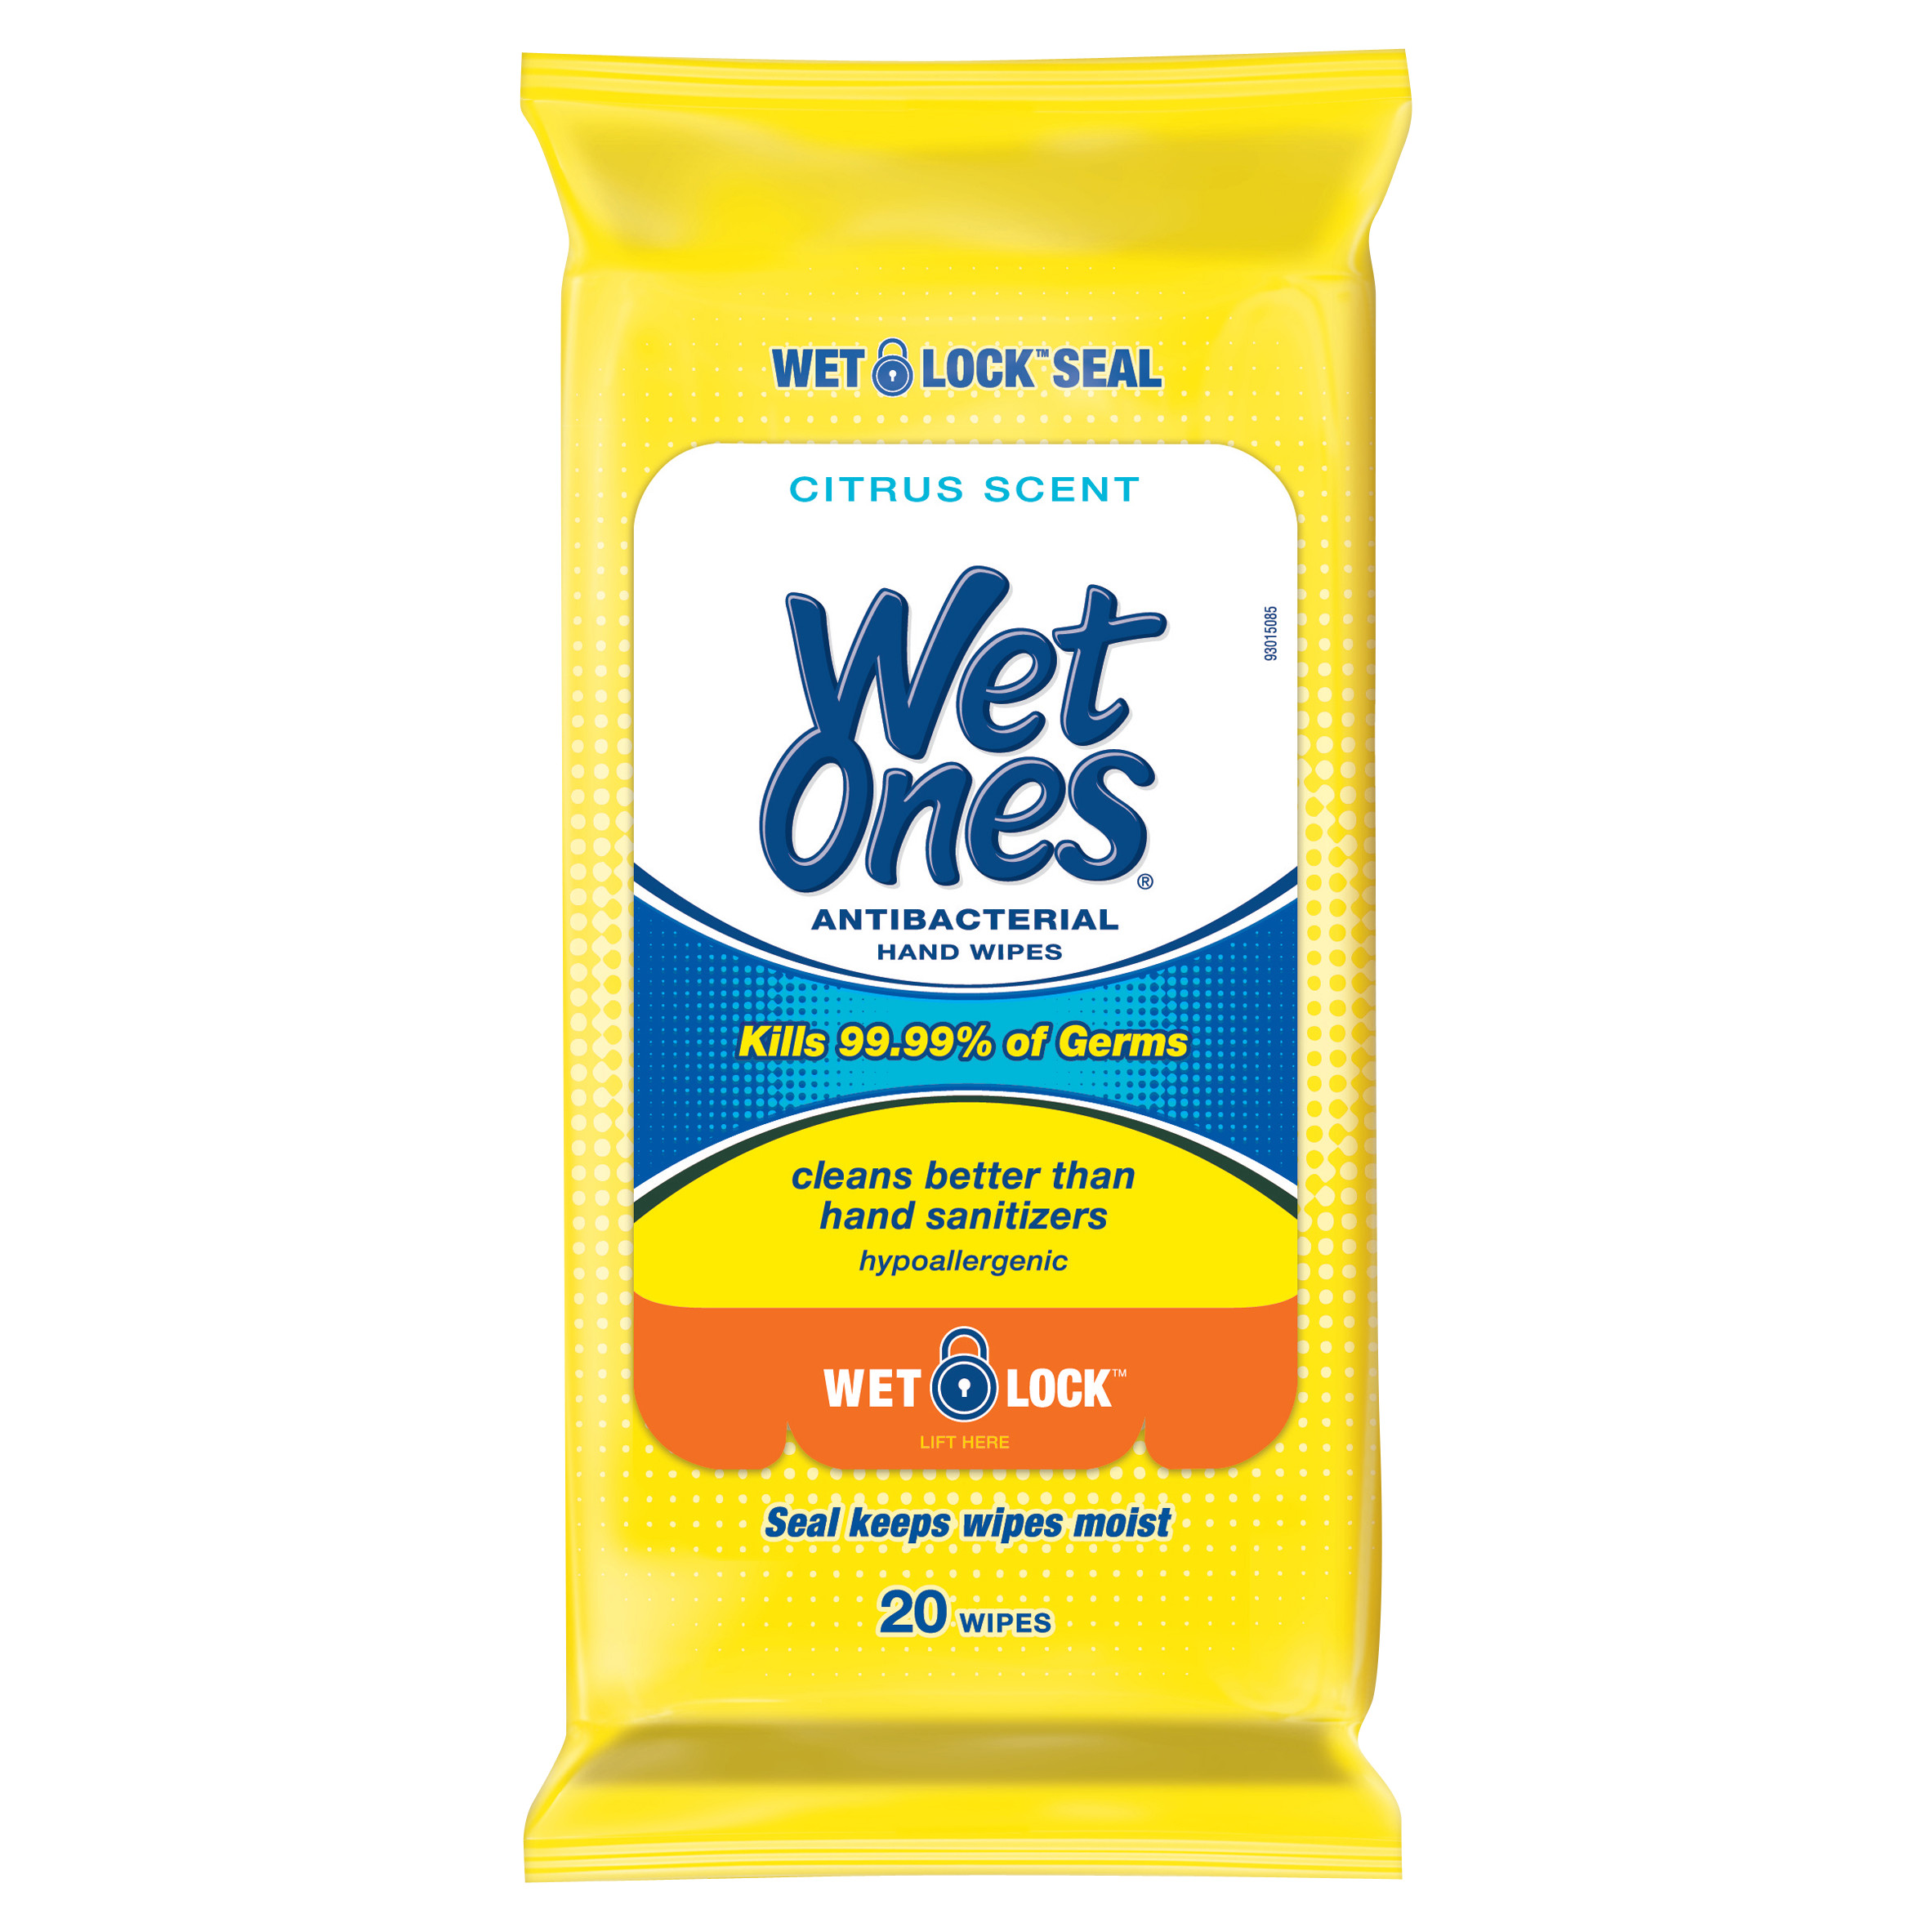 Wet Ones Antibacterial Hand Wipes Citrus Scent Travel Pack - 20 Count